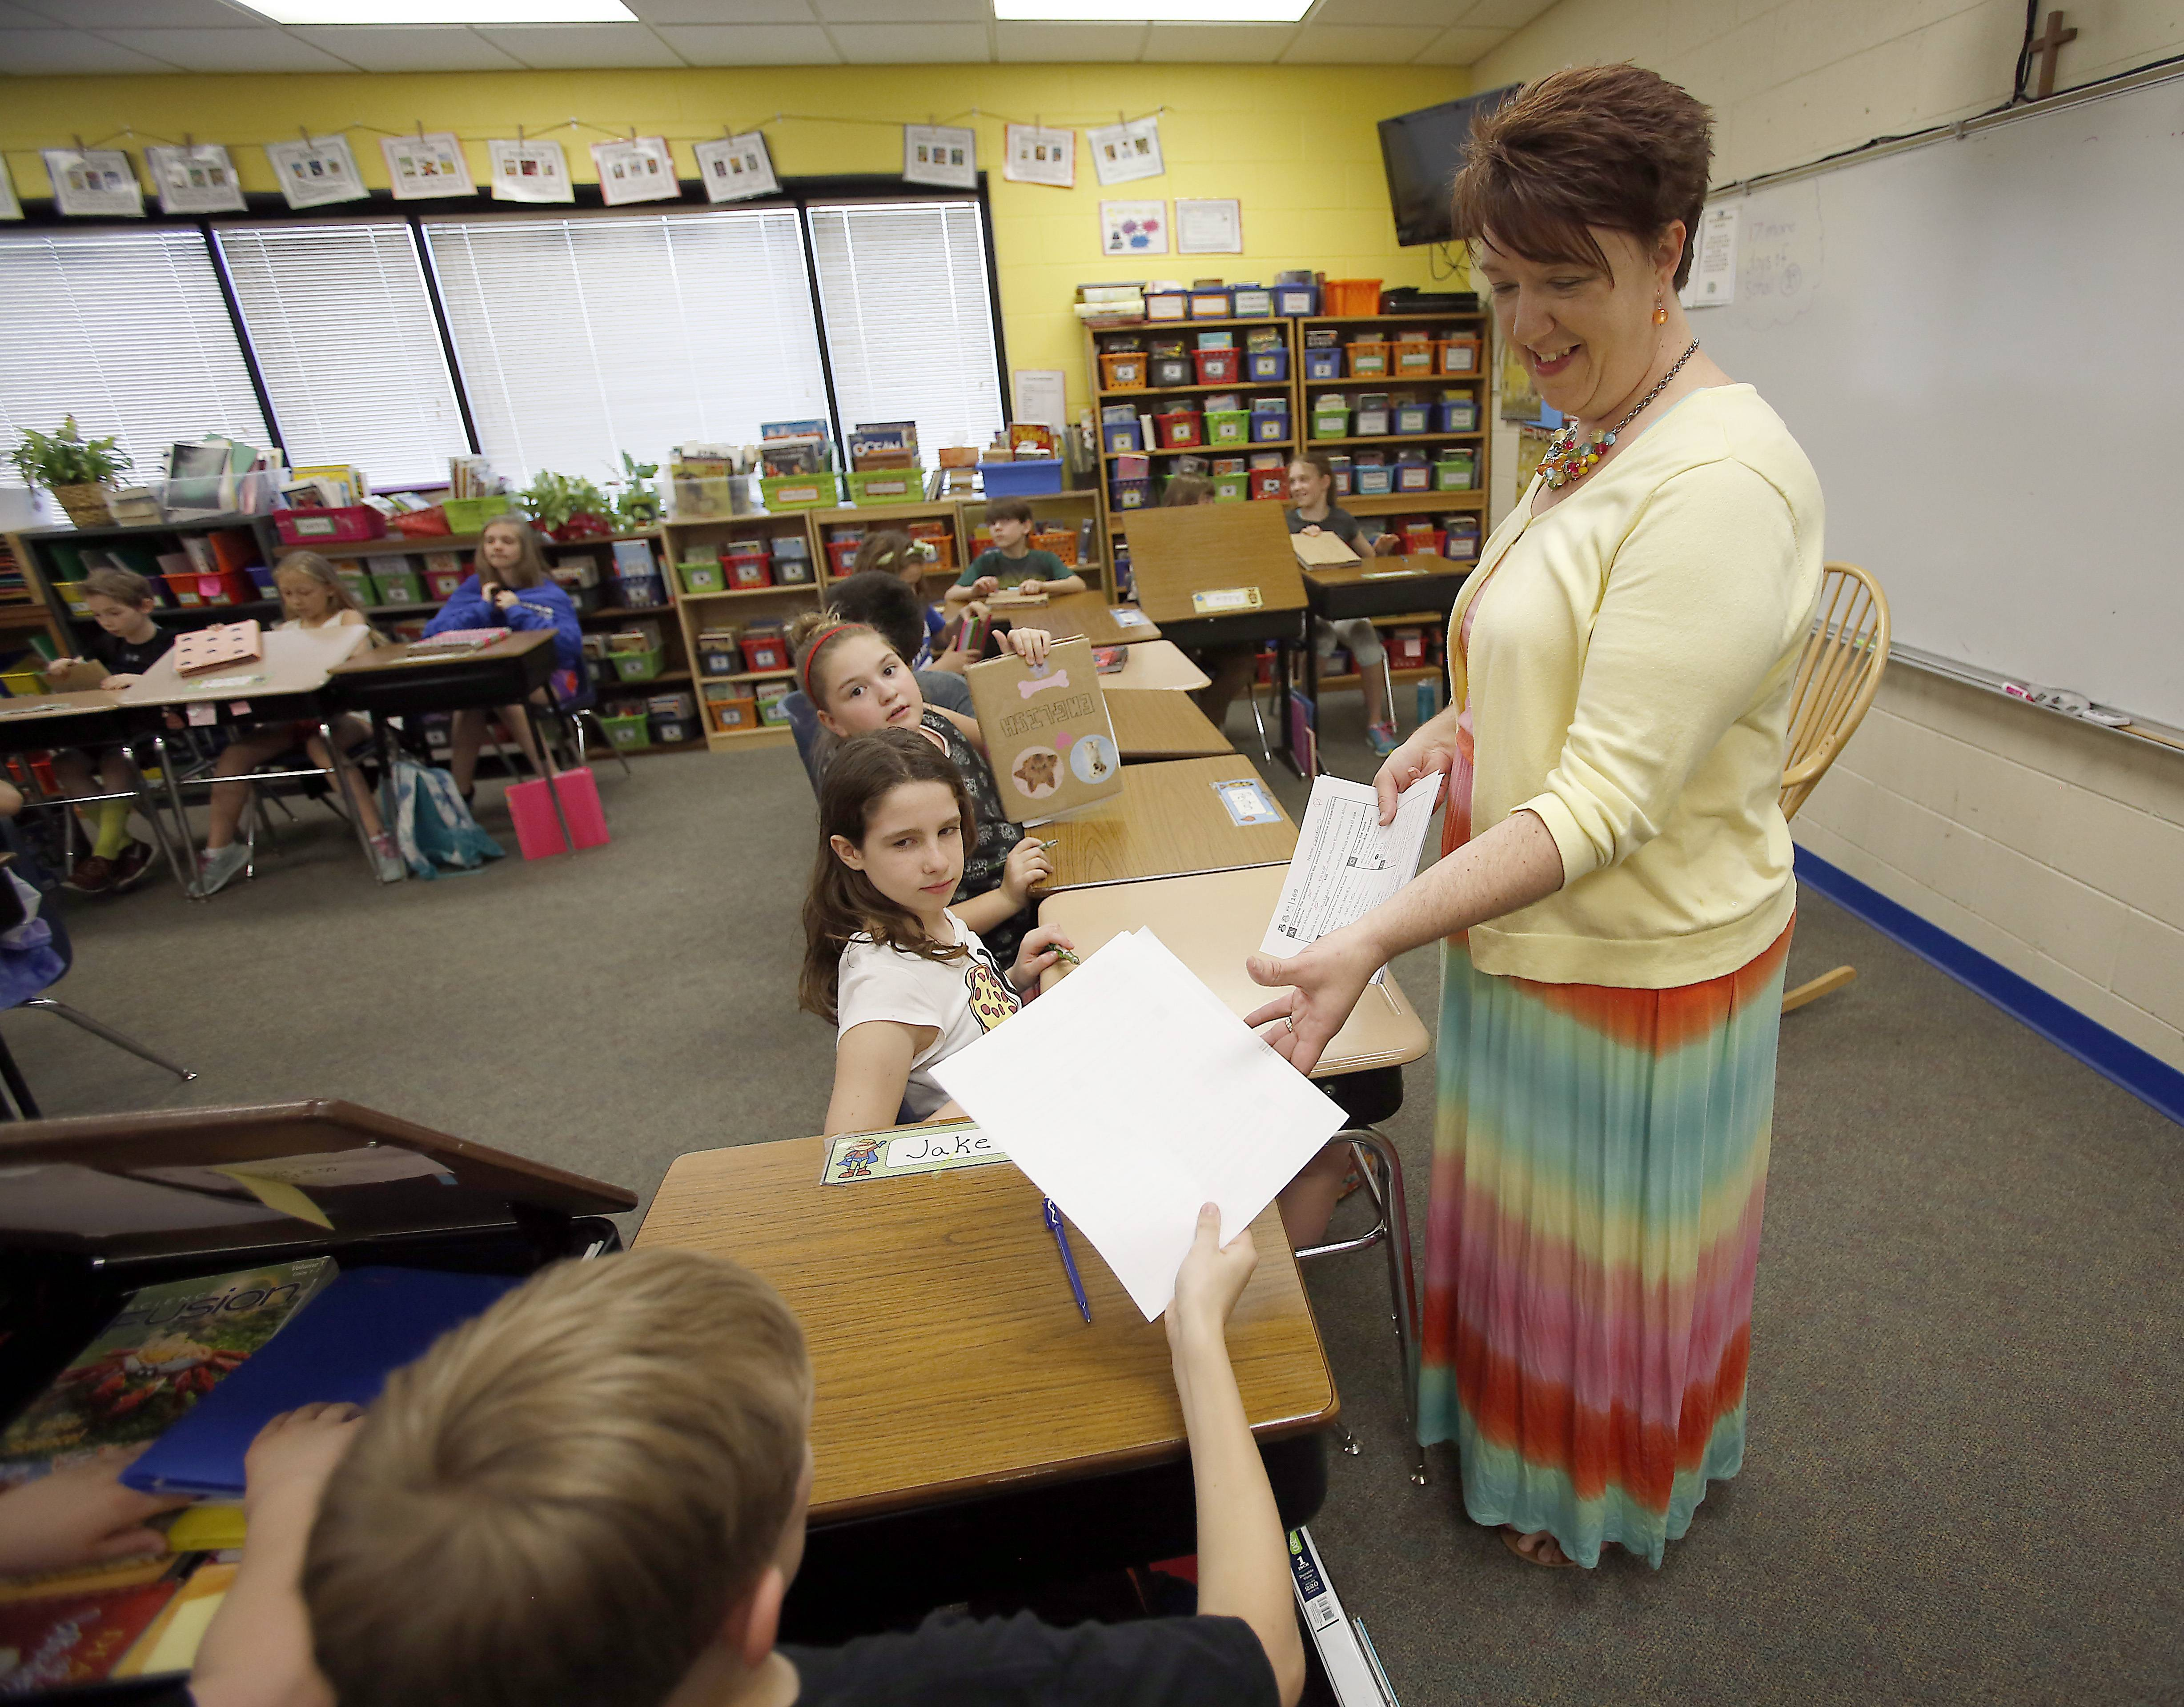 Penny Suydam teaches fifth grade at Immanuel Lutheran School in Batavia.